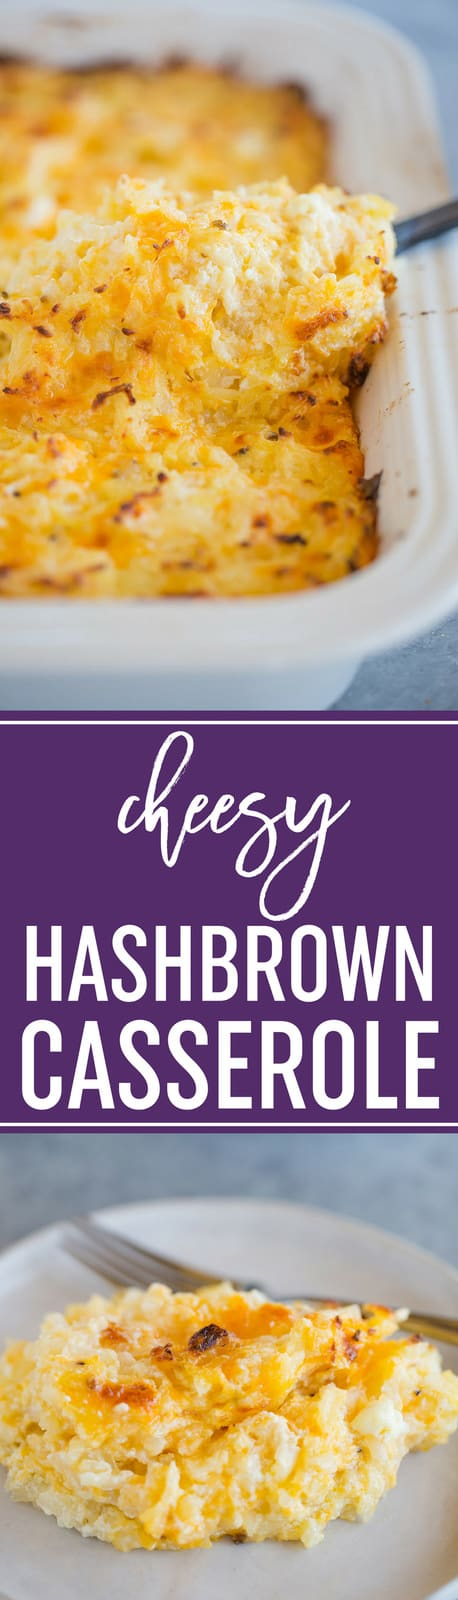 Hashbrown Casserole :: Easy, cheesy, takes only minutes to throw together, and is a favorite side dish for holiday dinners from Easter to Christmas and casual weeknight dinners alike. Total comfort food! #casserole #sidedish #easter #christmas #hashbrowns